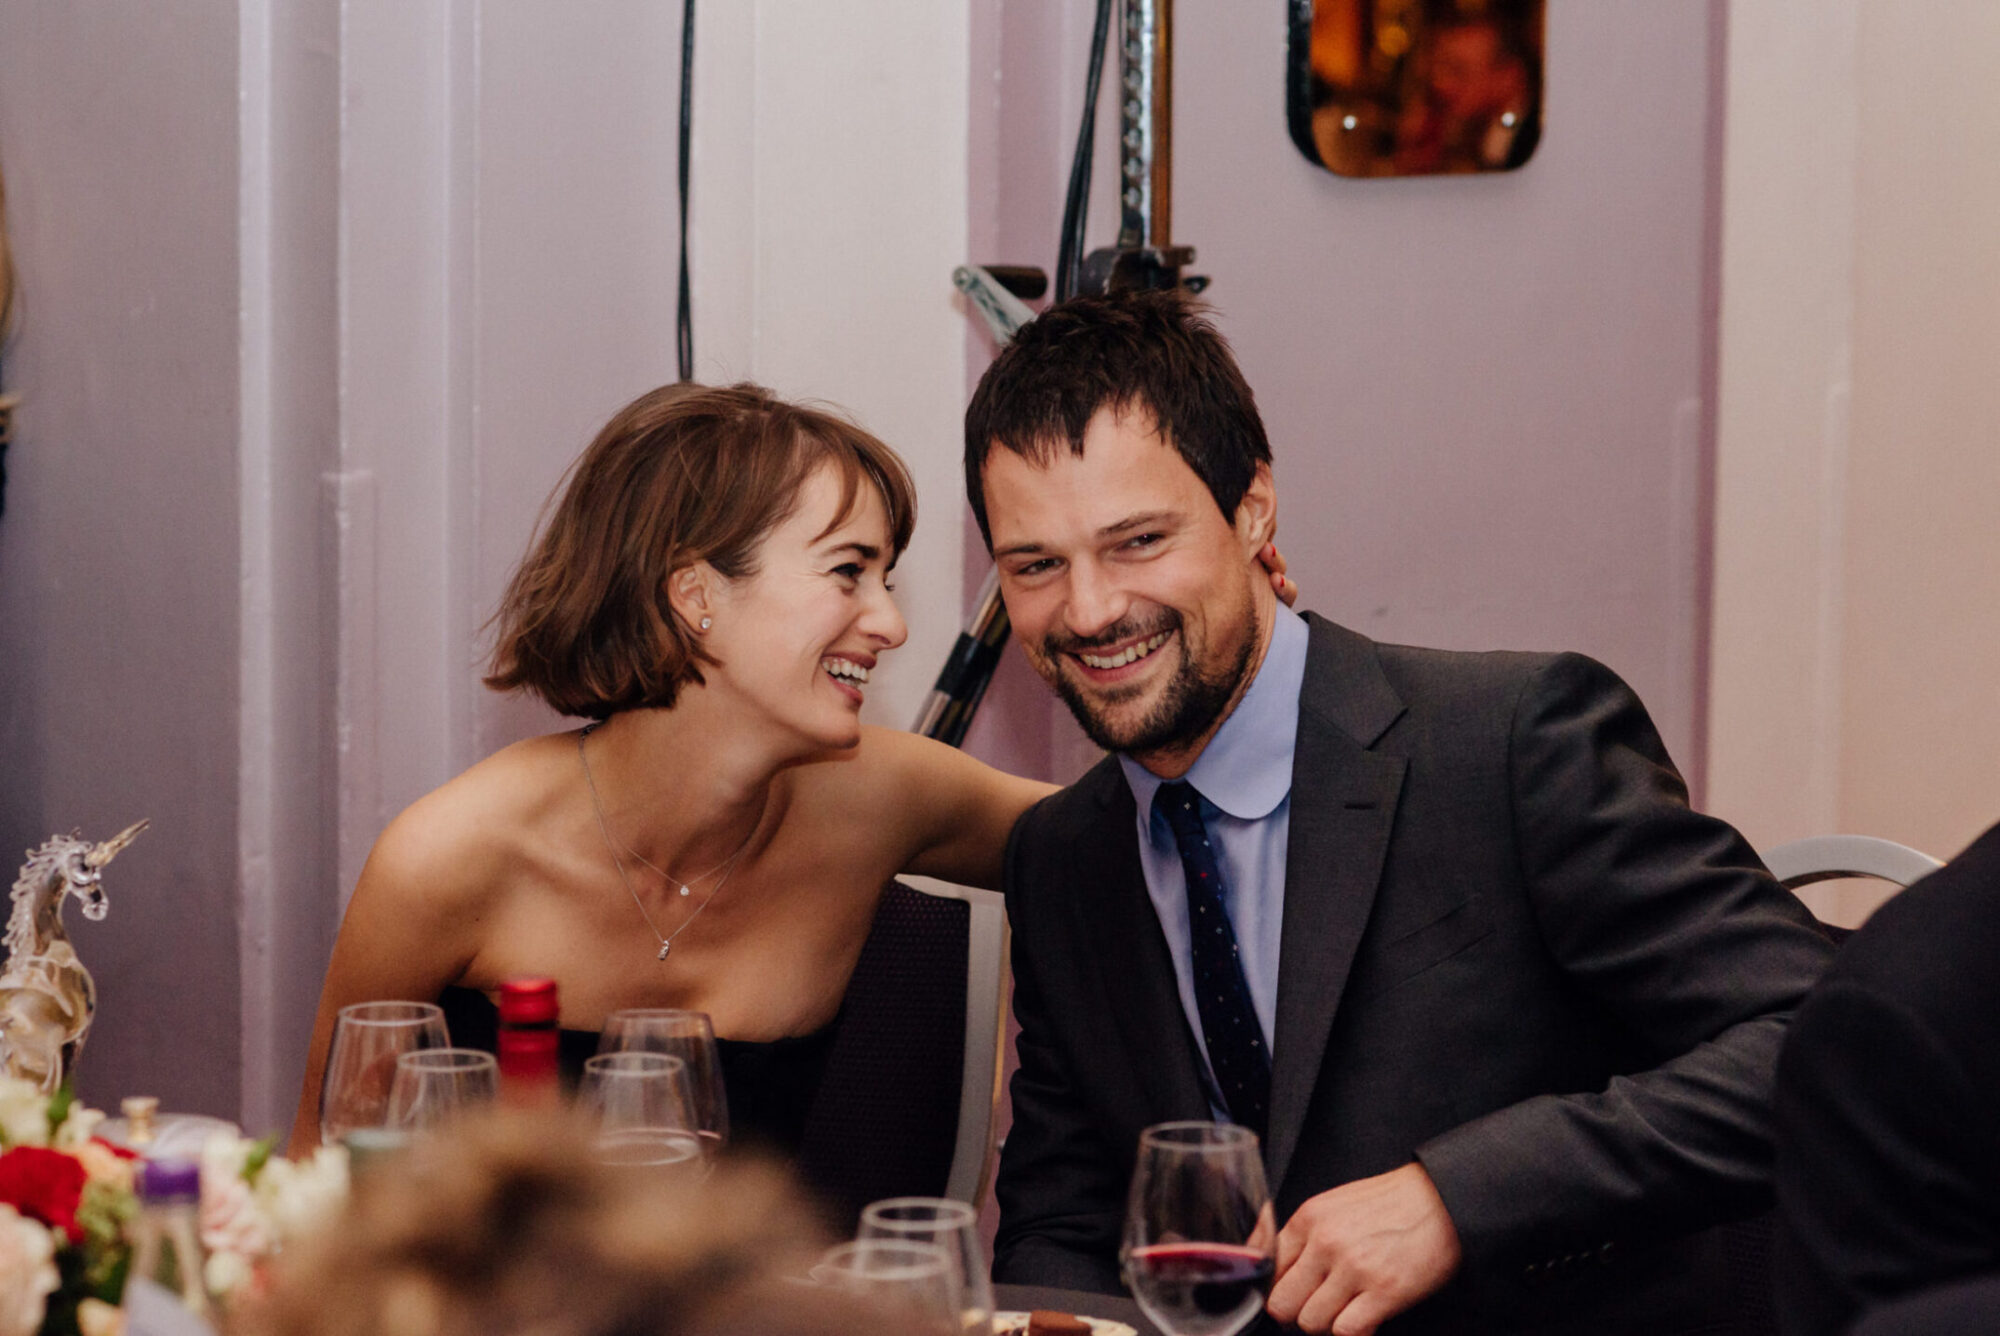 Danila Kozlovsky and Olga Zueva / Photo: Olga Kotilevskaya